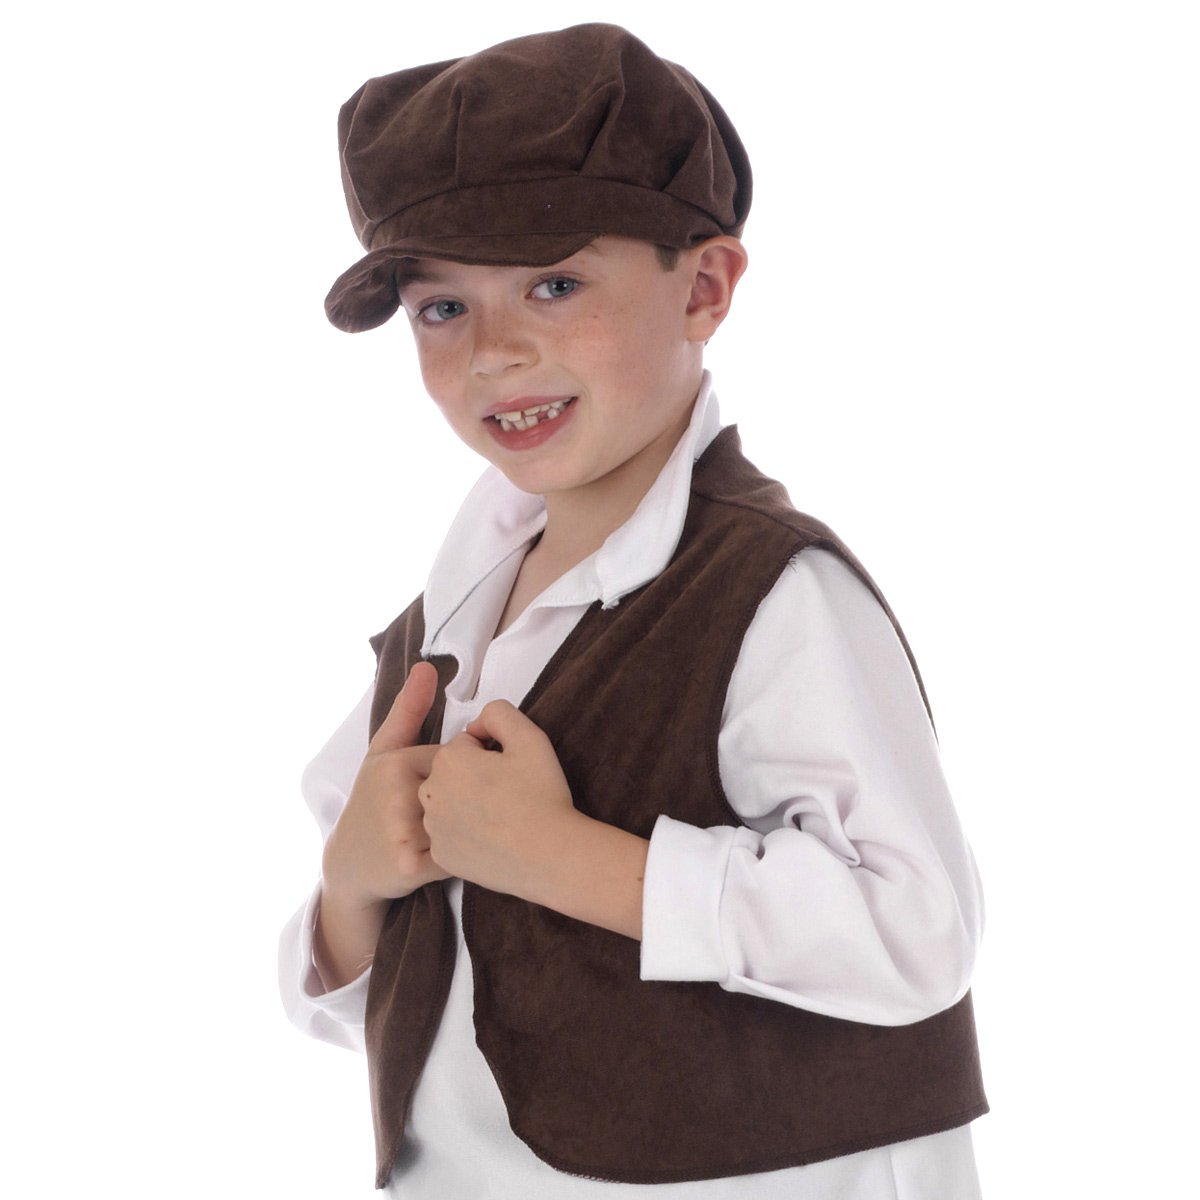 Vintage Style Children's Clothing: Girls, Boys, Baby, Toddler Brown Flat Cap & Waistcoat for kids | One size fits all 3-9 years £8.50 AT vintagedancer.com